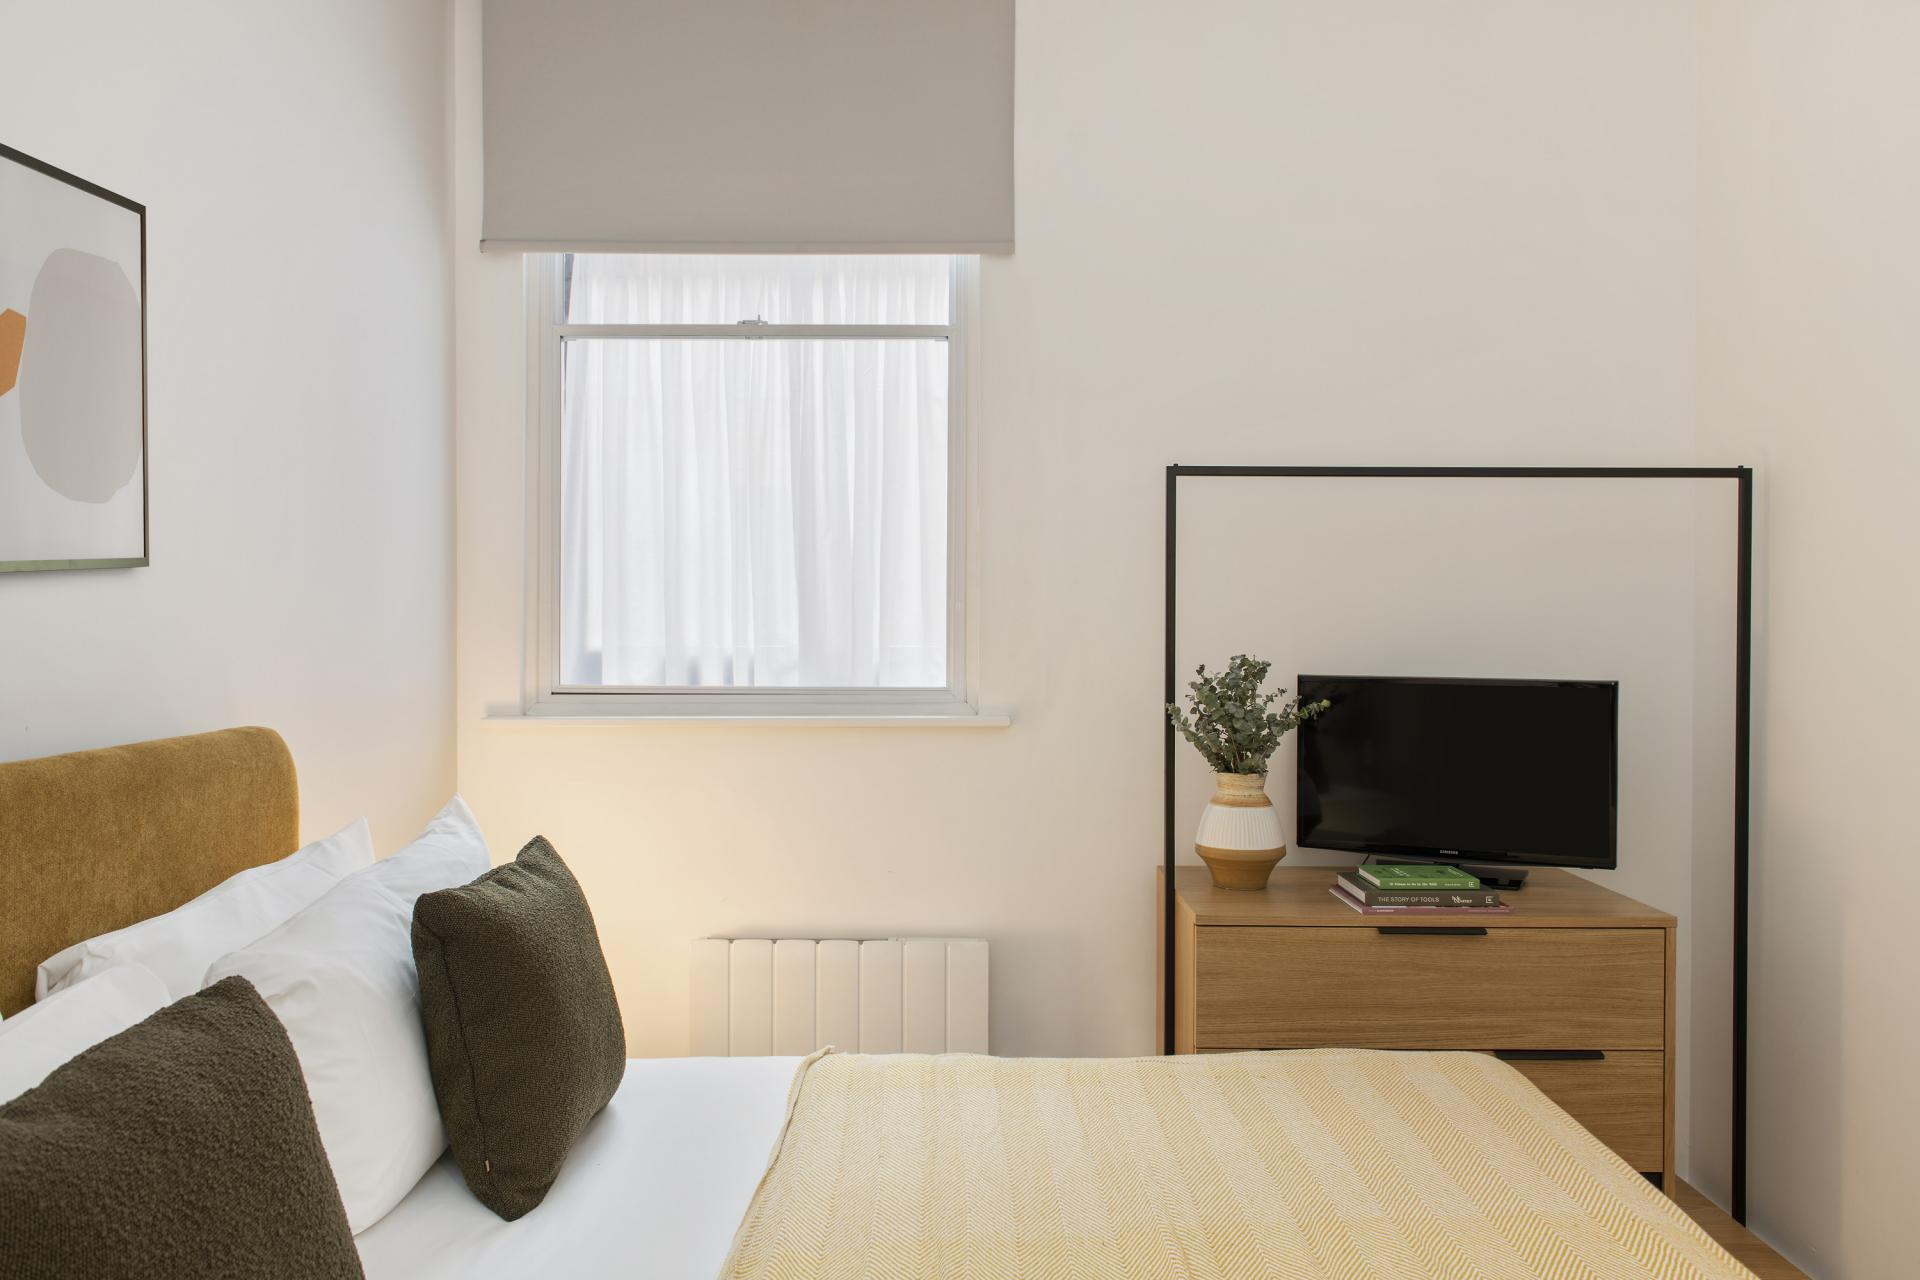 Bedroom at Cove Minshull Street, Piccadilly, Manchester - Citybase Apartments